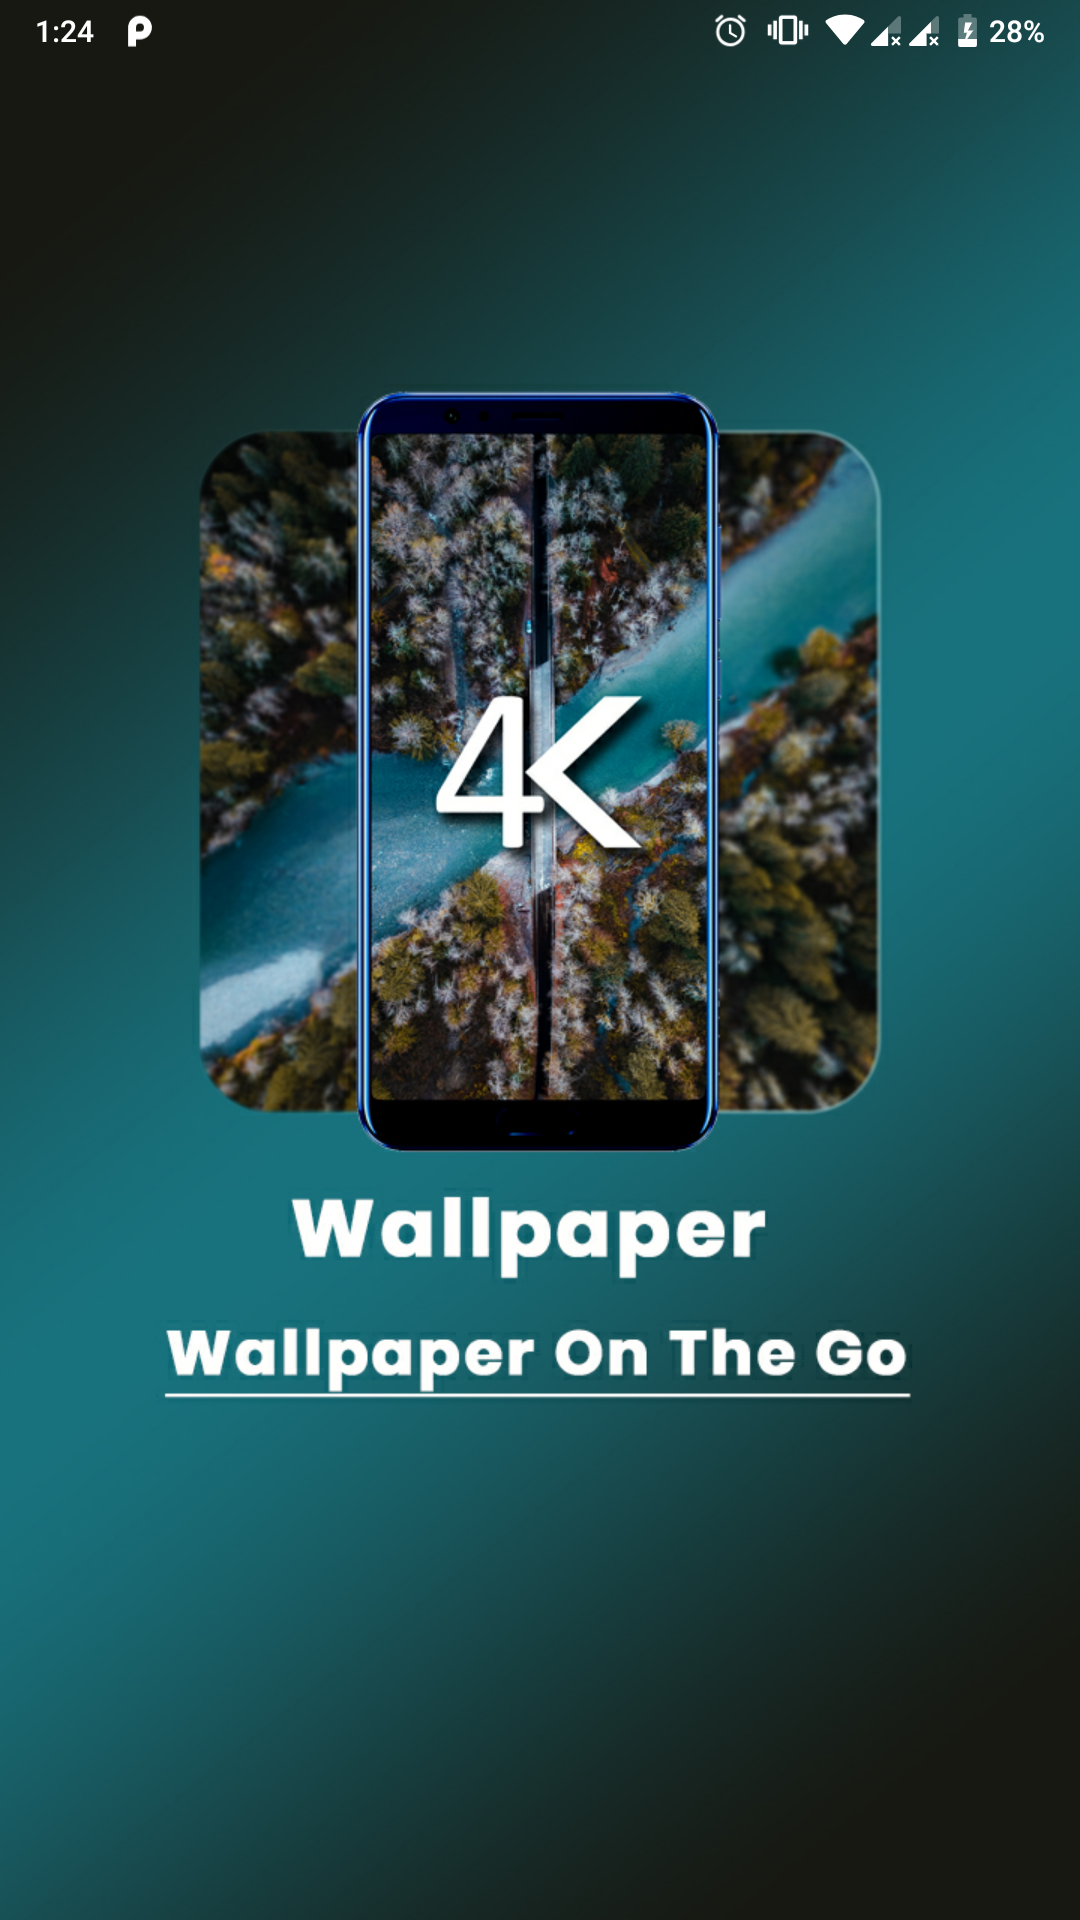 Universal Wallpaper Android app - (HD, Full HD, 4K, Ultra HD Wallpapers)